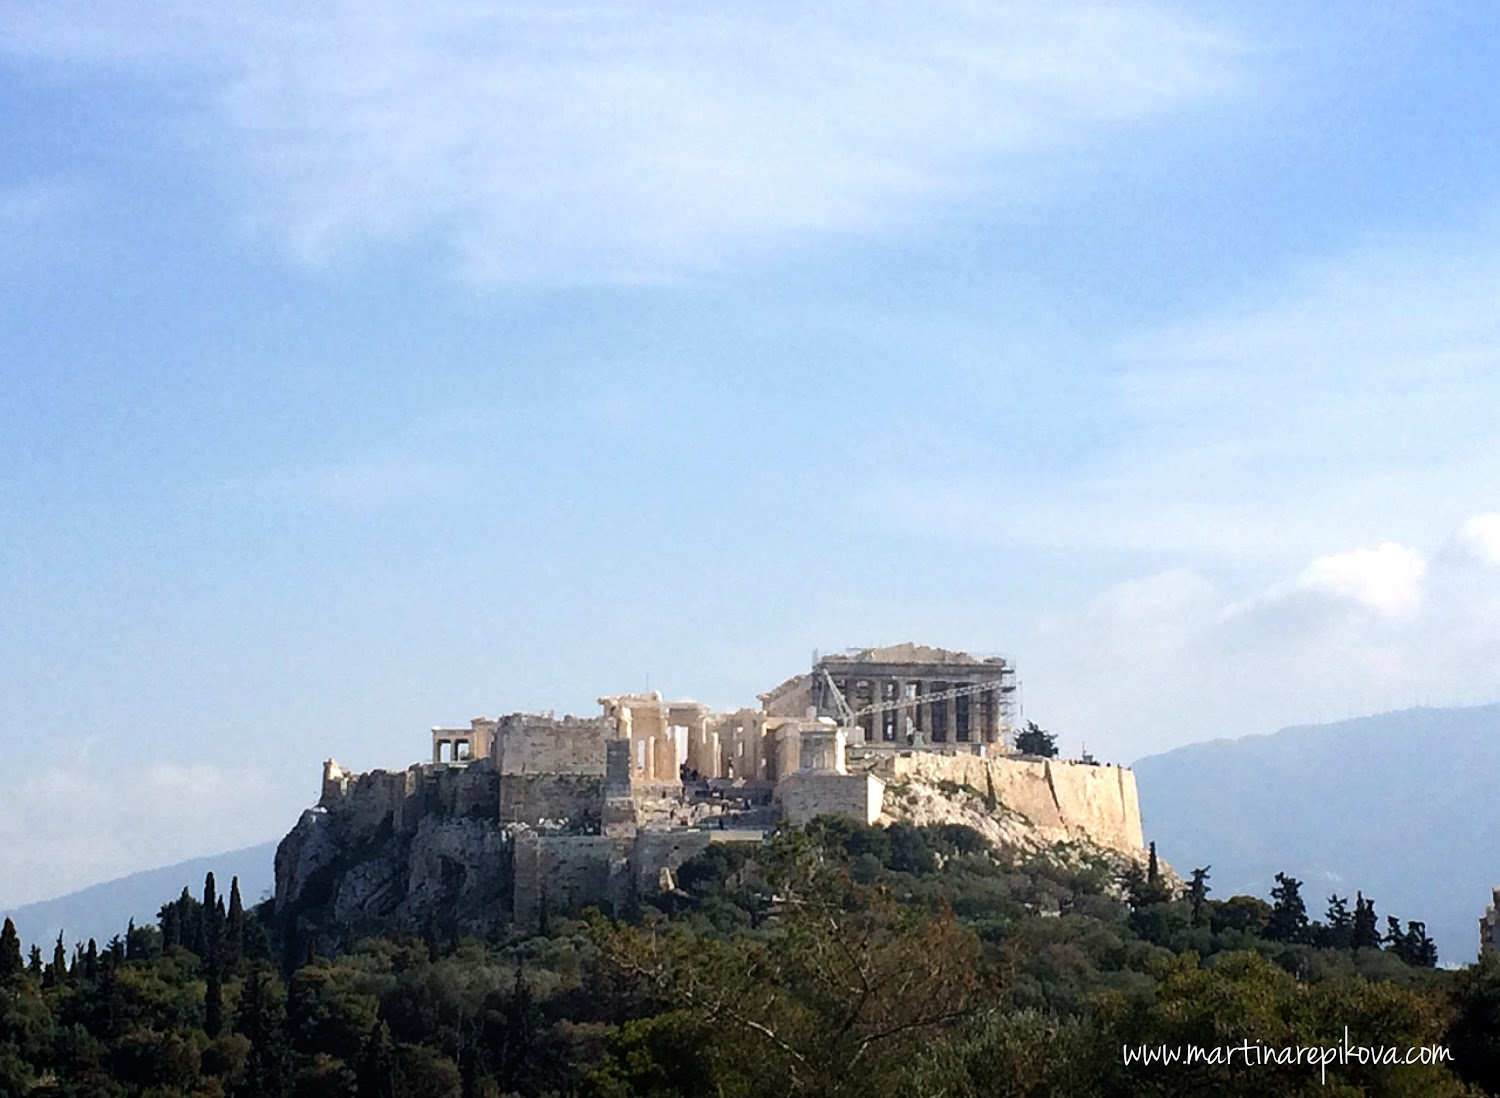 View of Acropolis from Filopappou hill, Athens, Greece